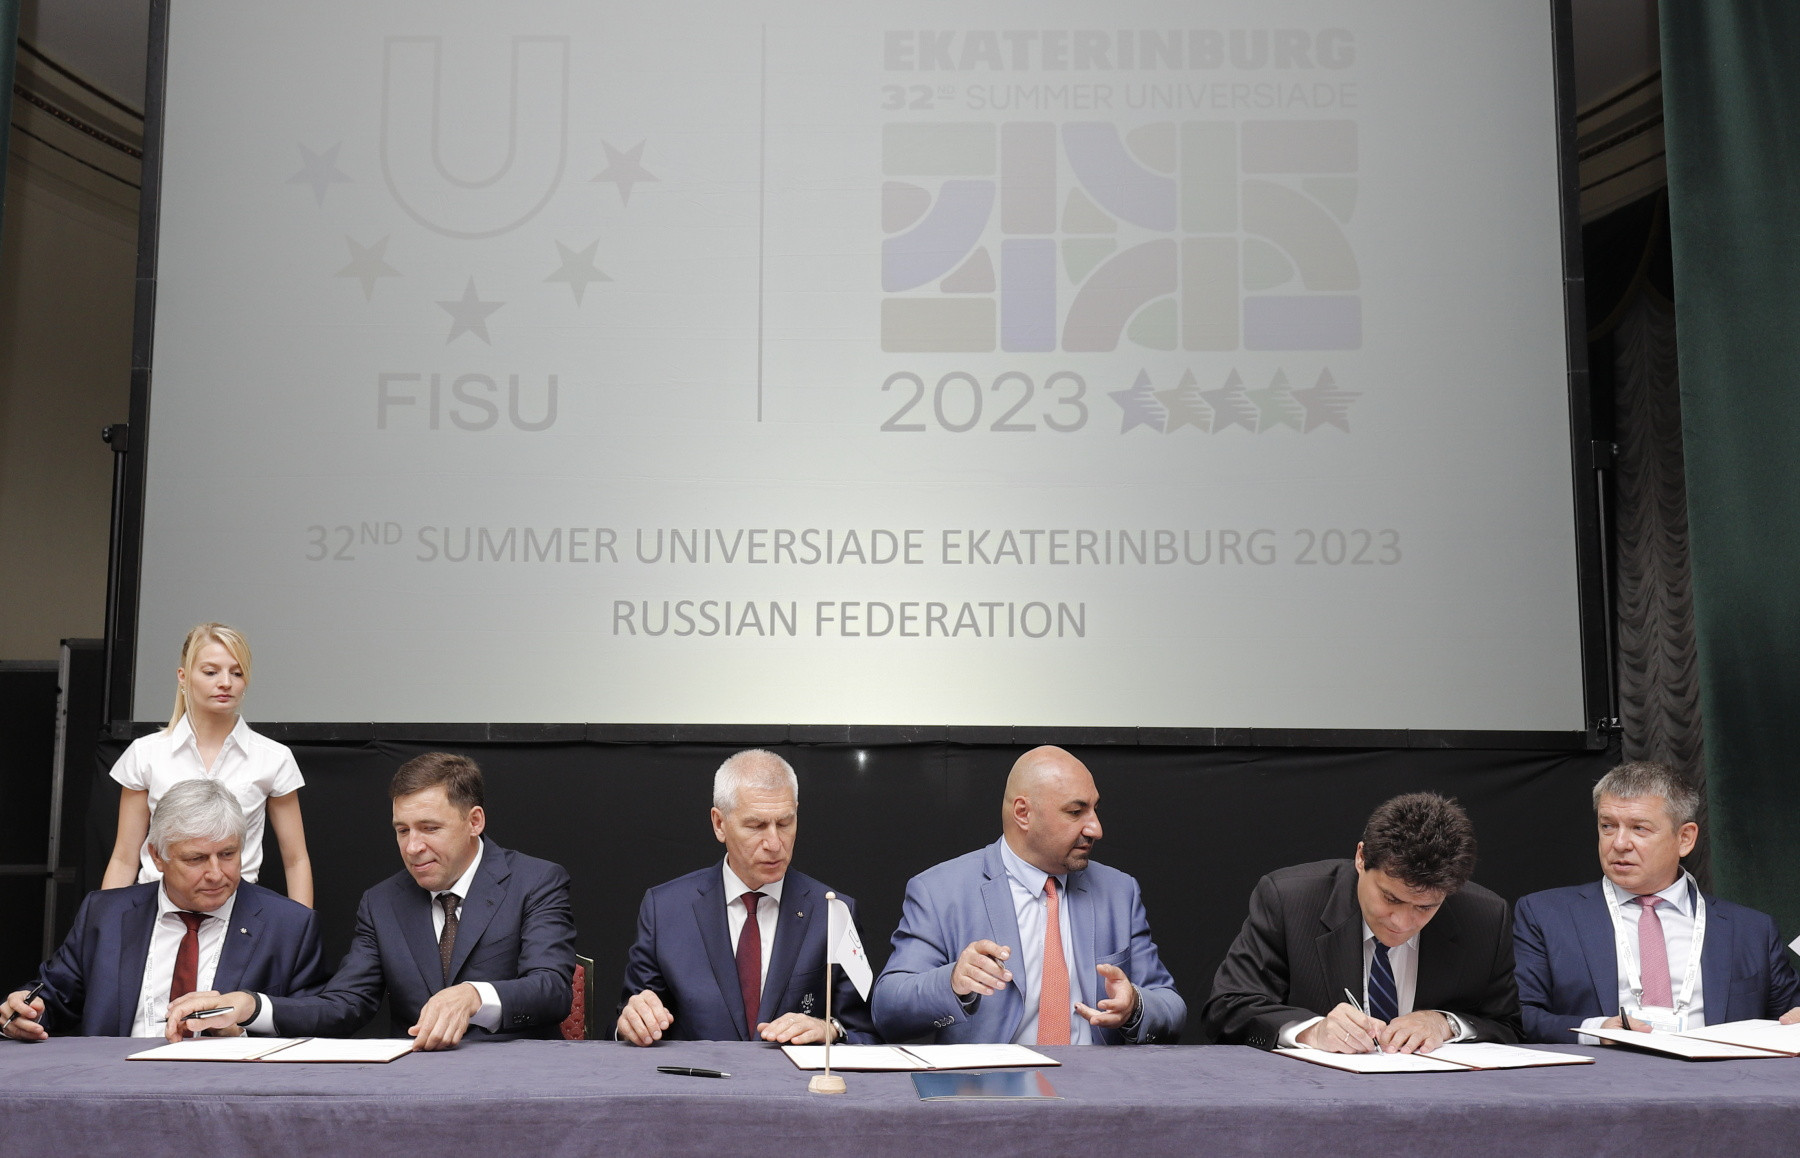 FISU have awarded the 2023 Summer Universiade to Yekaterinburg ©FISU